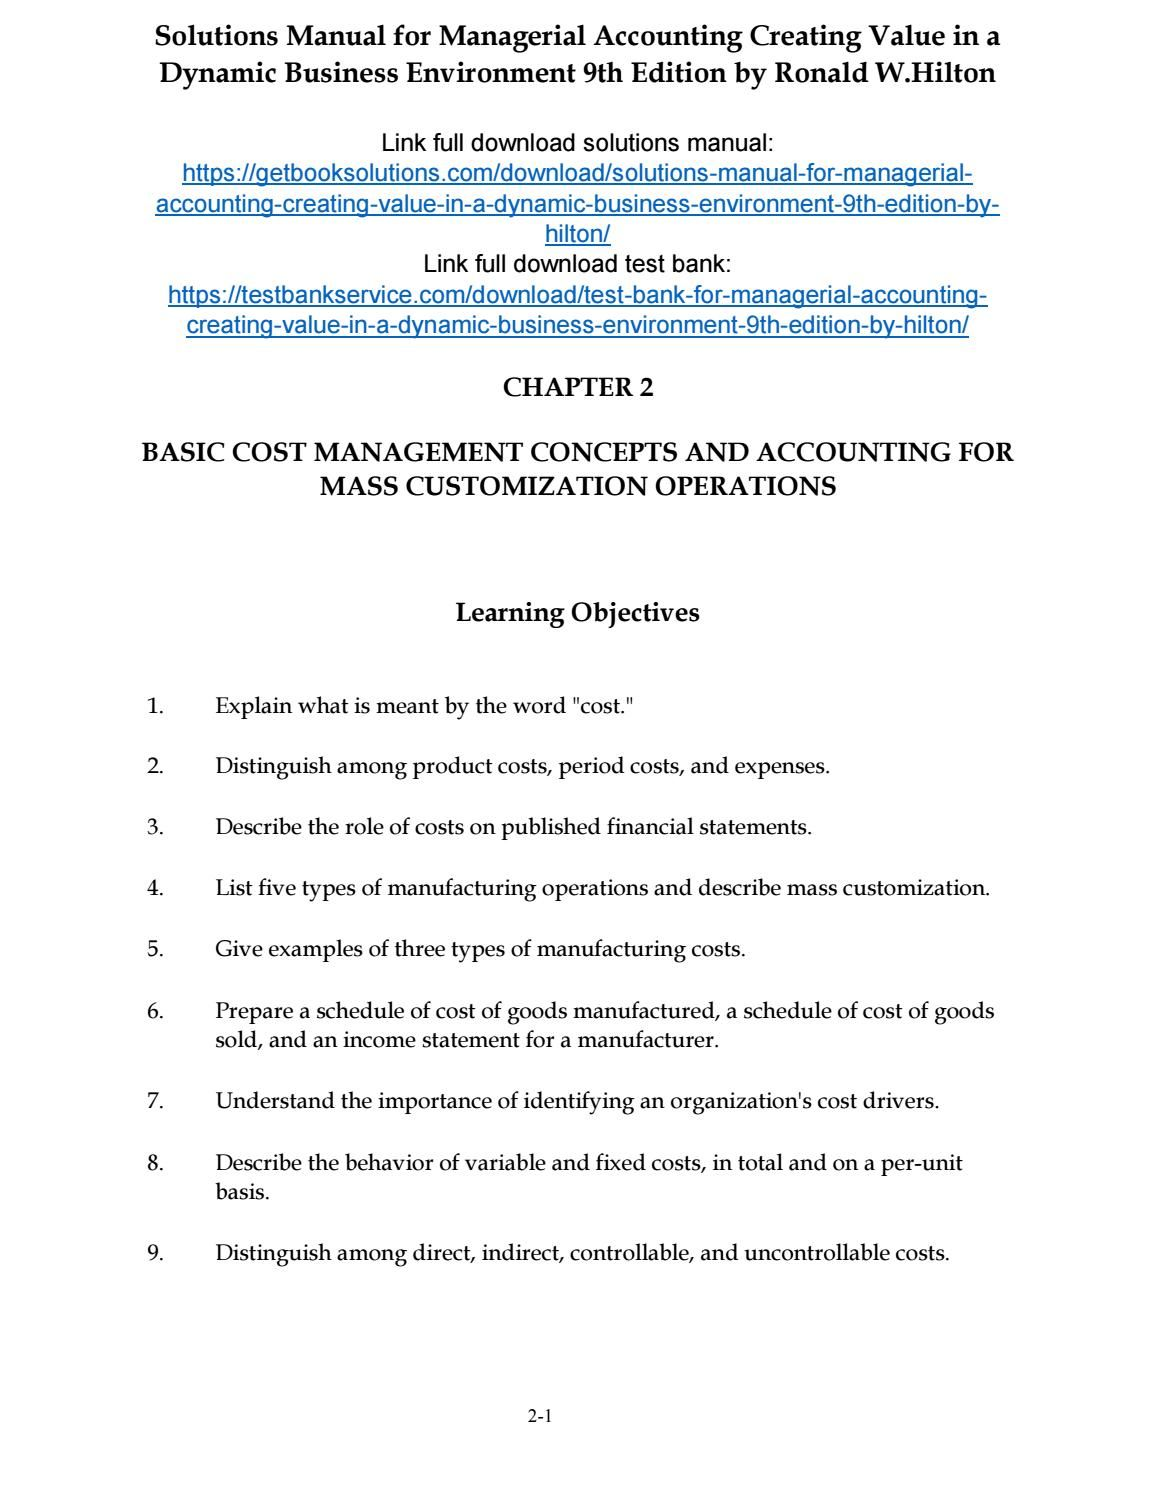 Solutions Manual For Managerial Accounting Creating Value In A